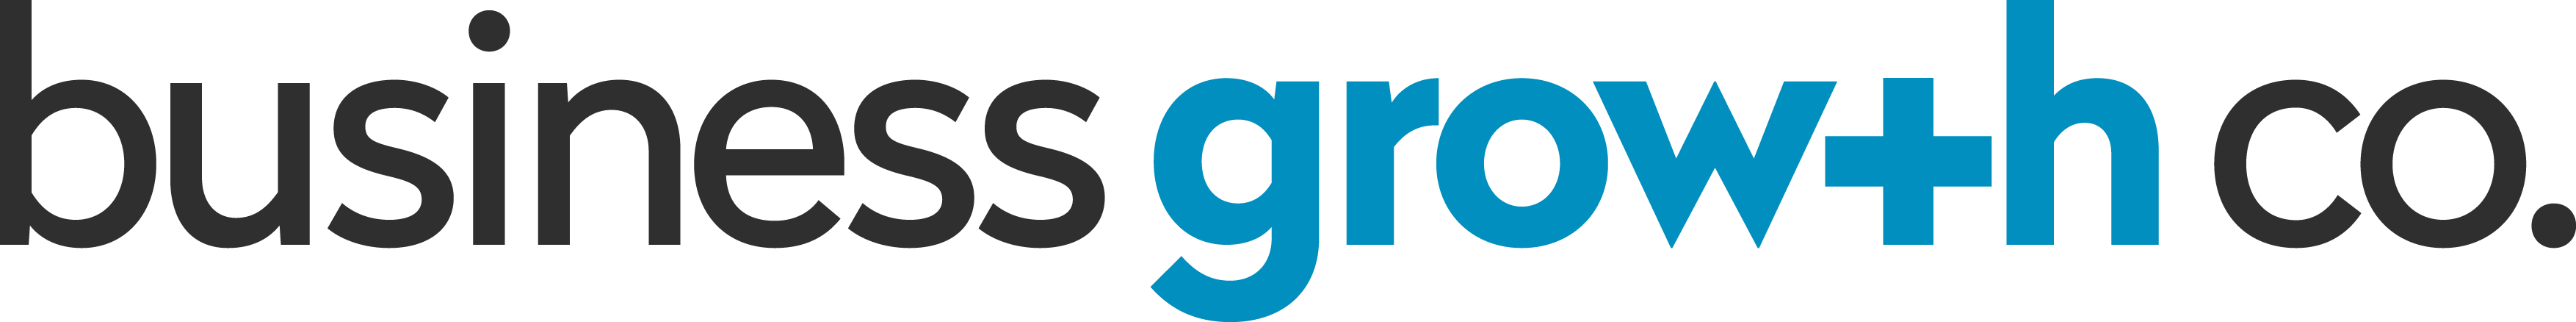 Business Growth Co. Logo